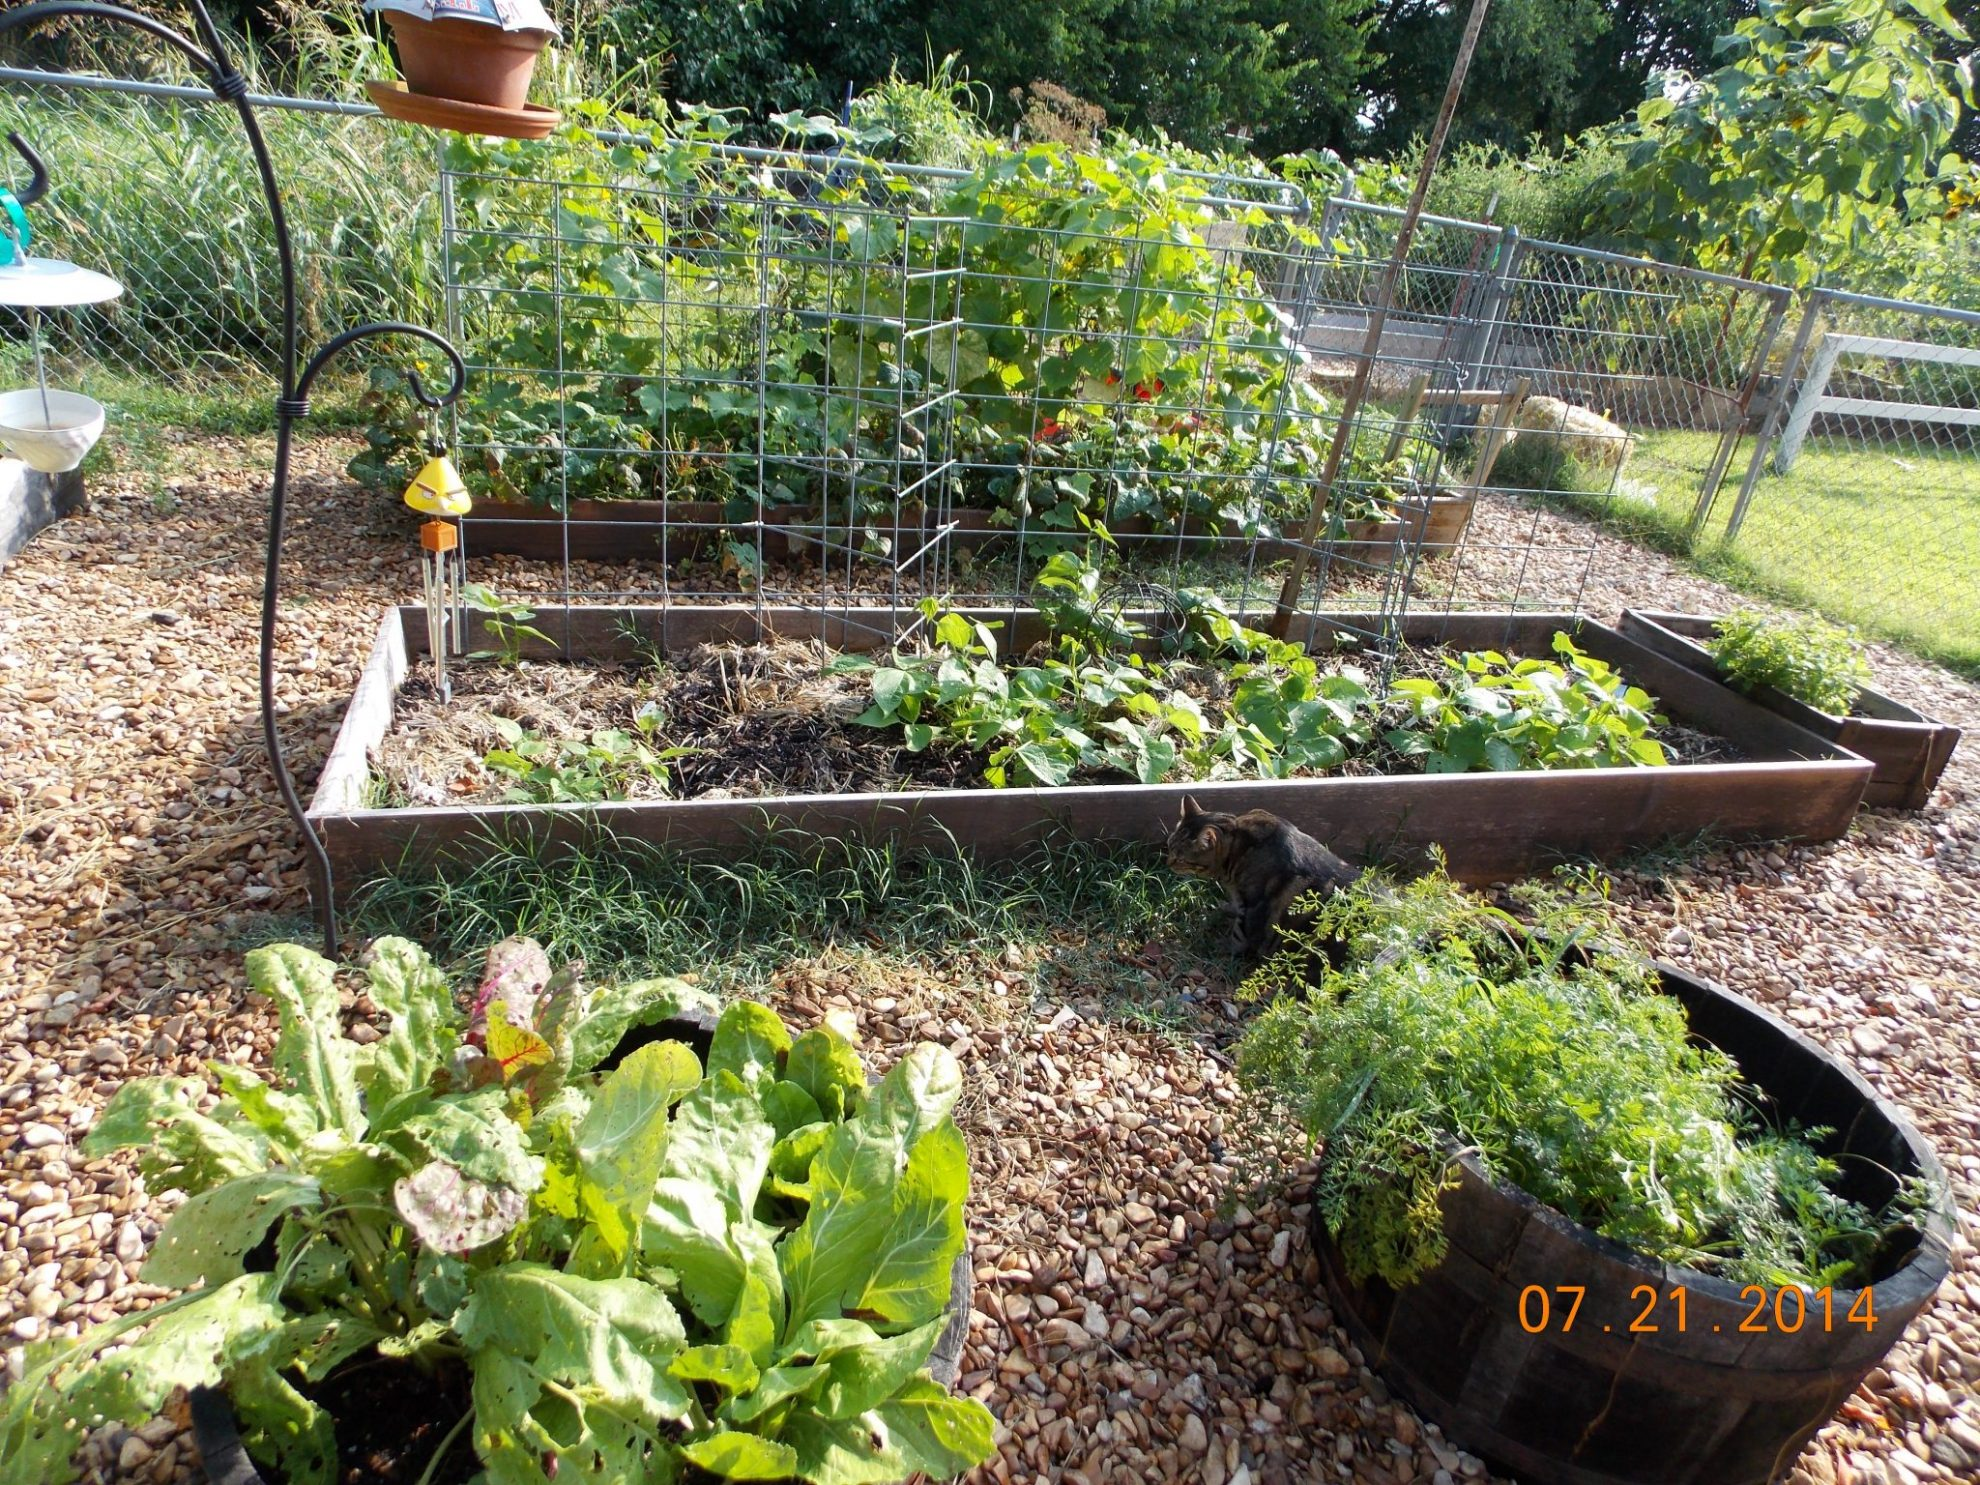 When the garden decides to put out cucumbers, it REALLY decides to put them out. You can end up with a ton of excess cucumbers and that can get overwhelming. Are you wondering what to do with excess cucumbers?